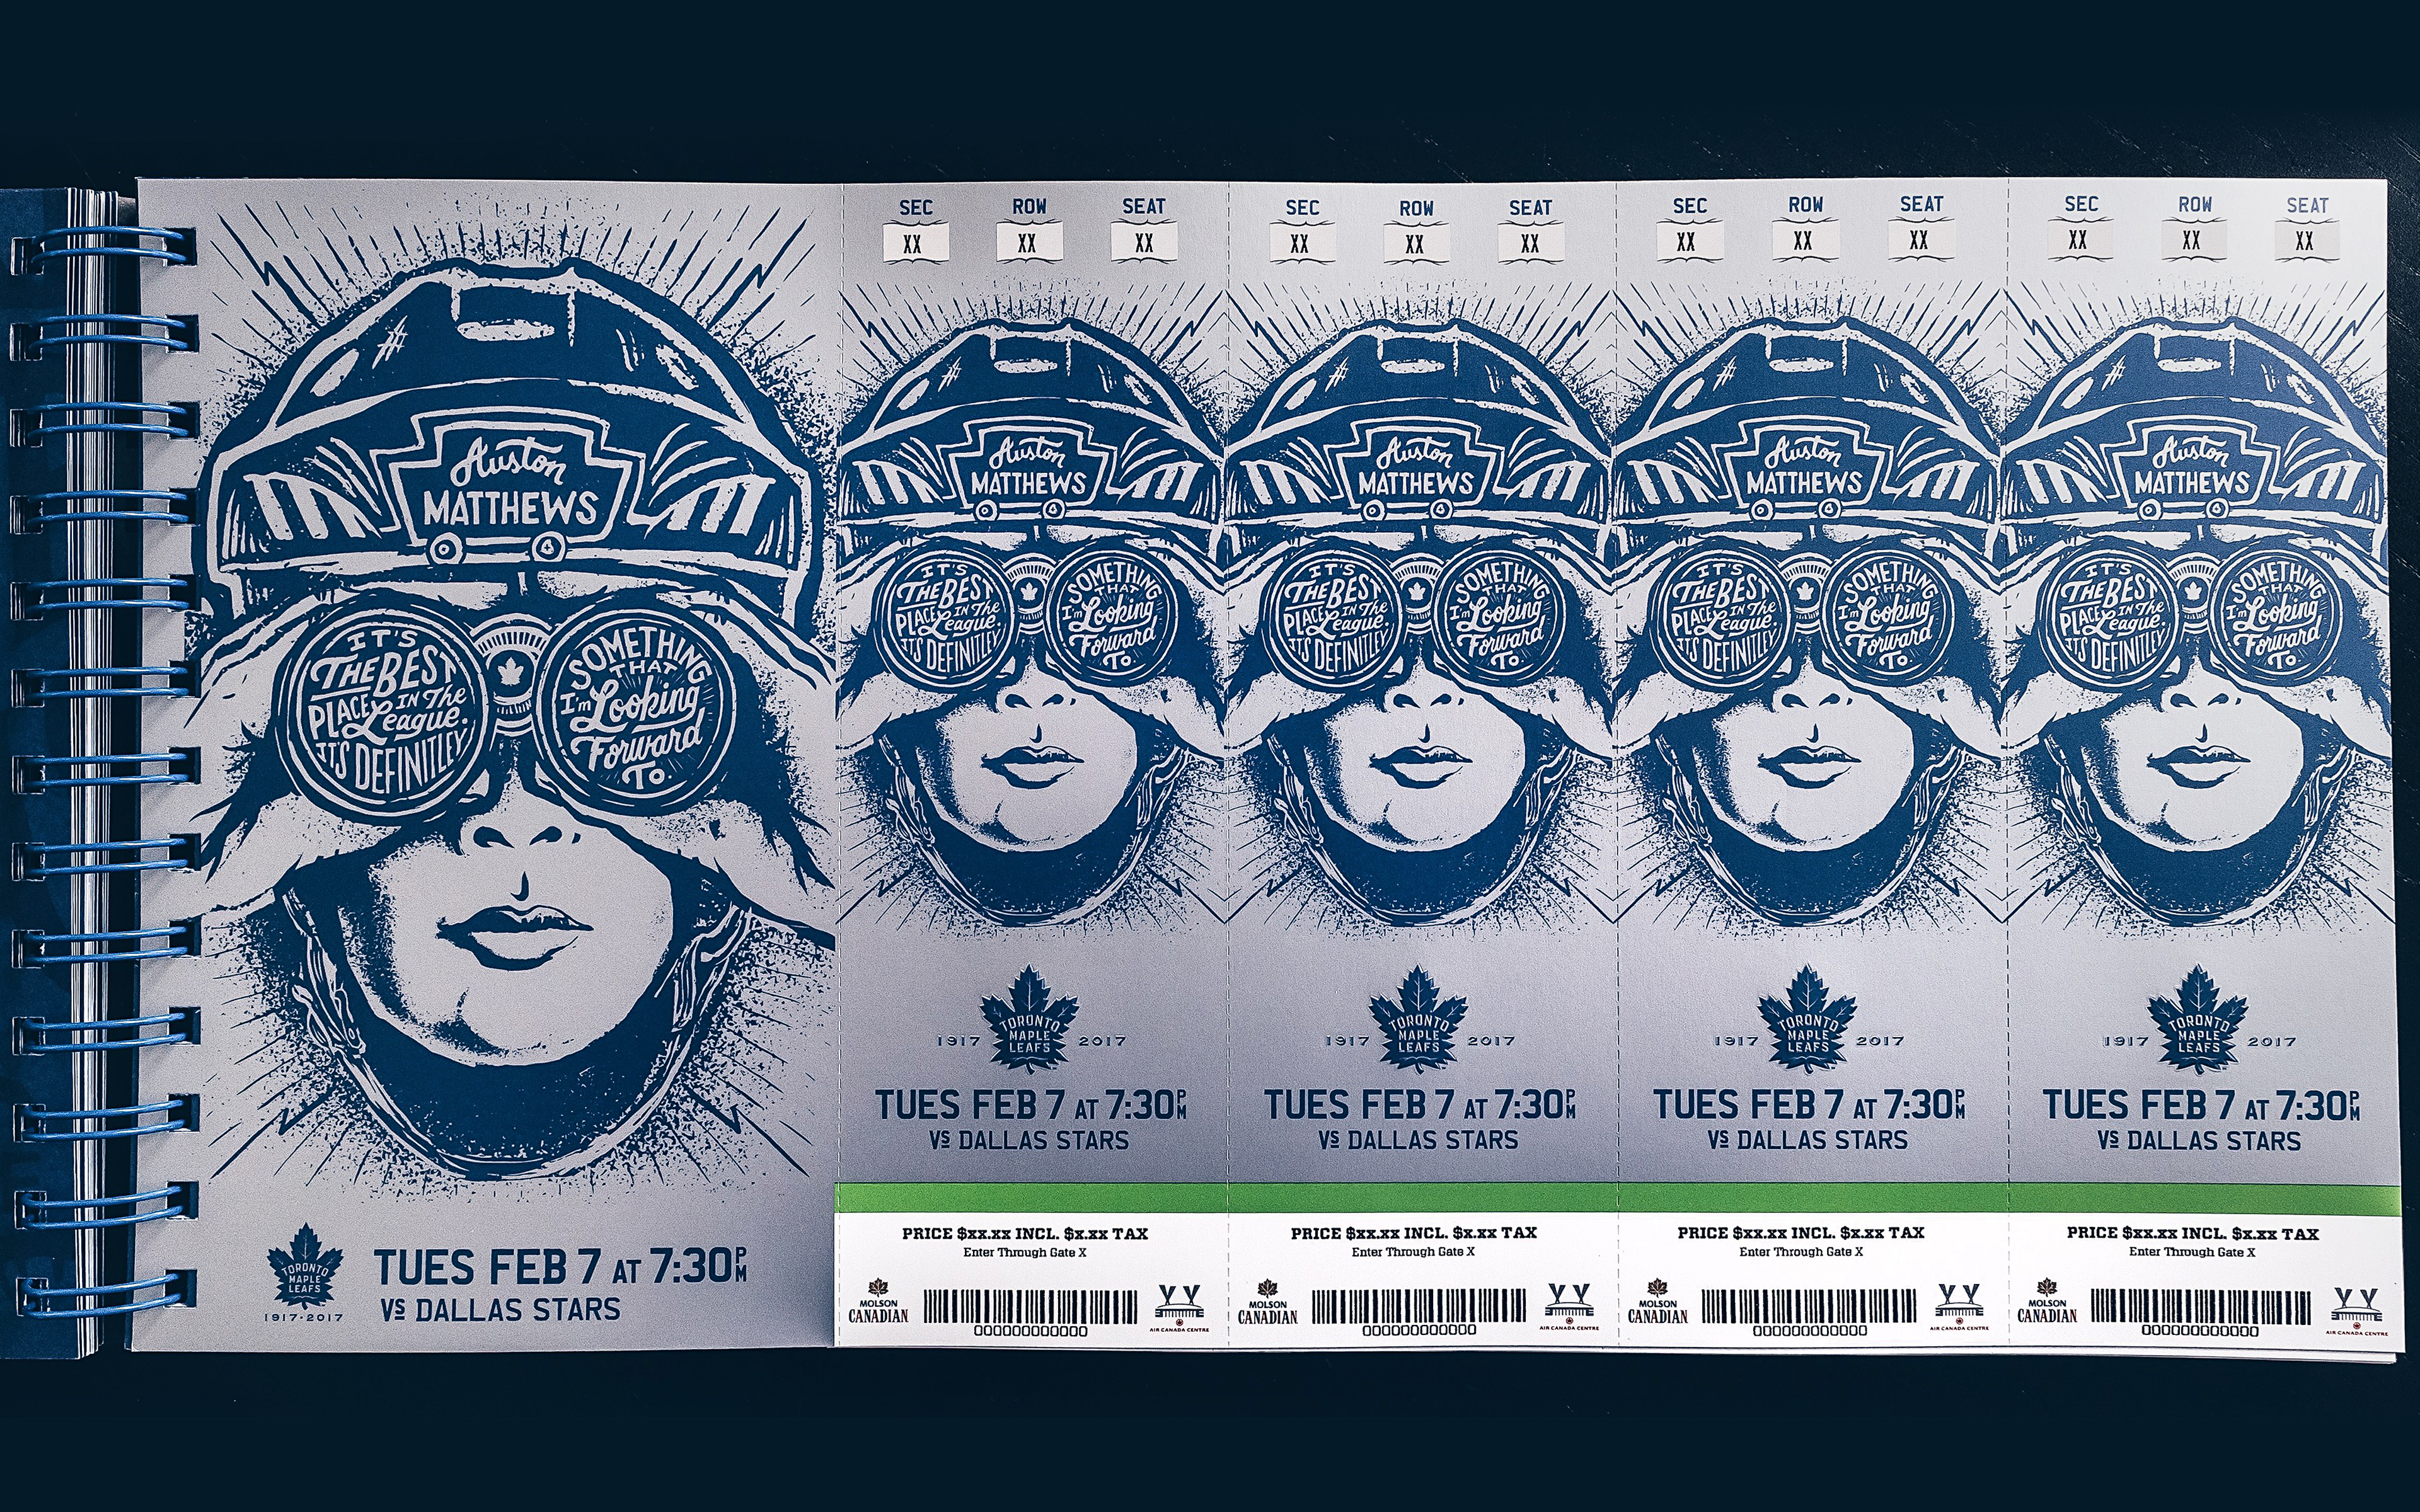 Thumbnail for Toronto Maple Leafs 2016-17 Centennial Season Ticket Package